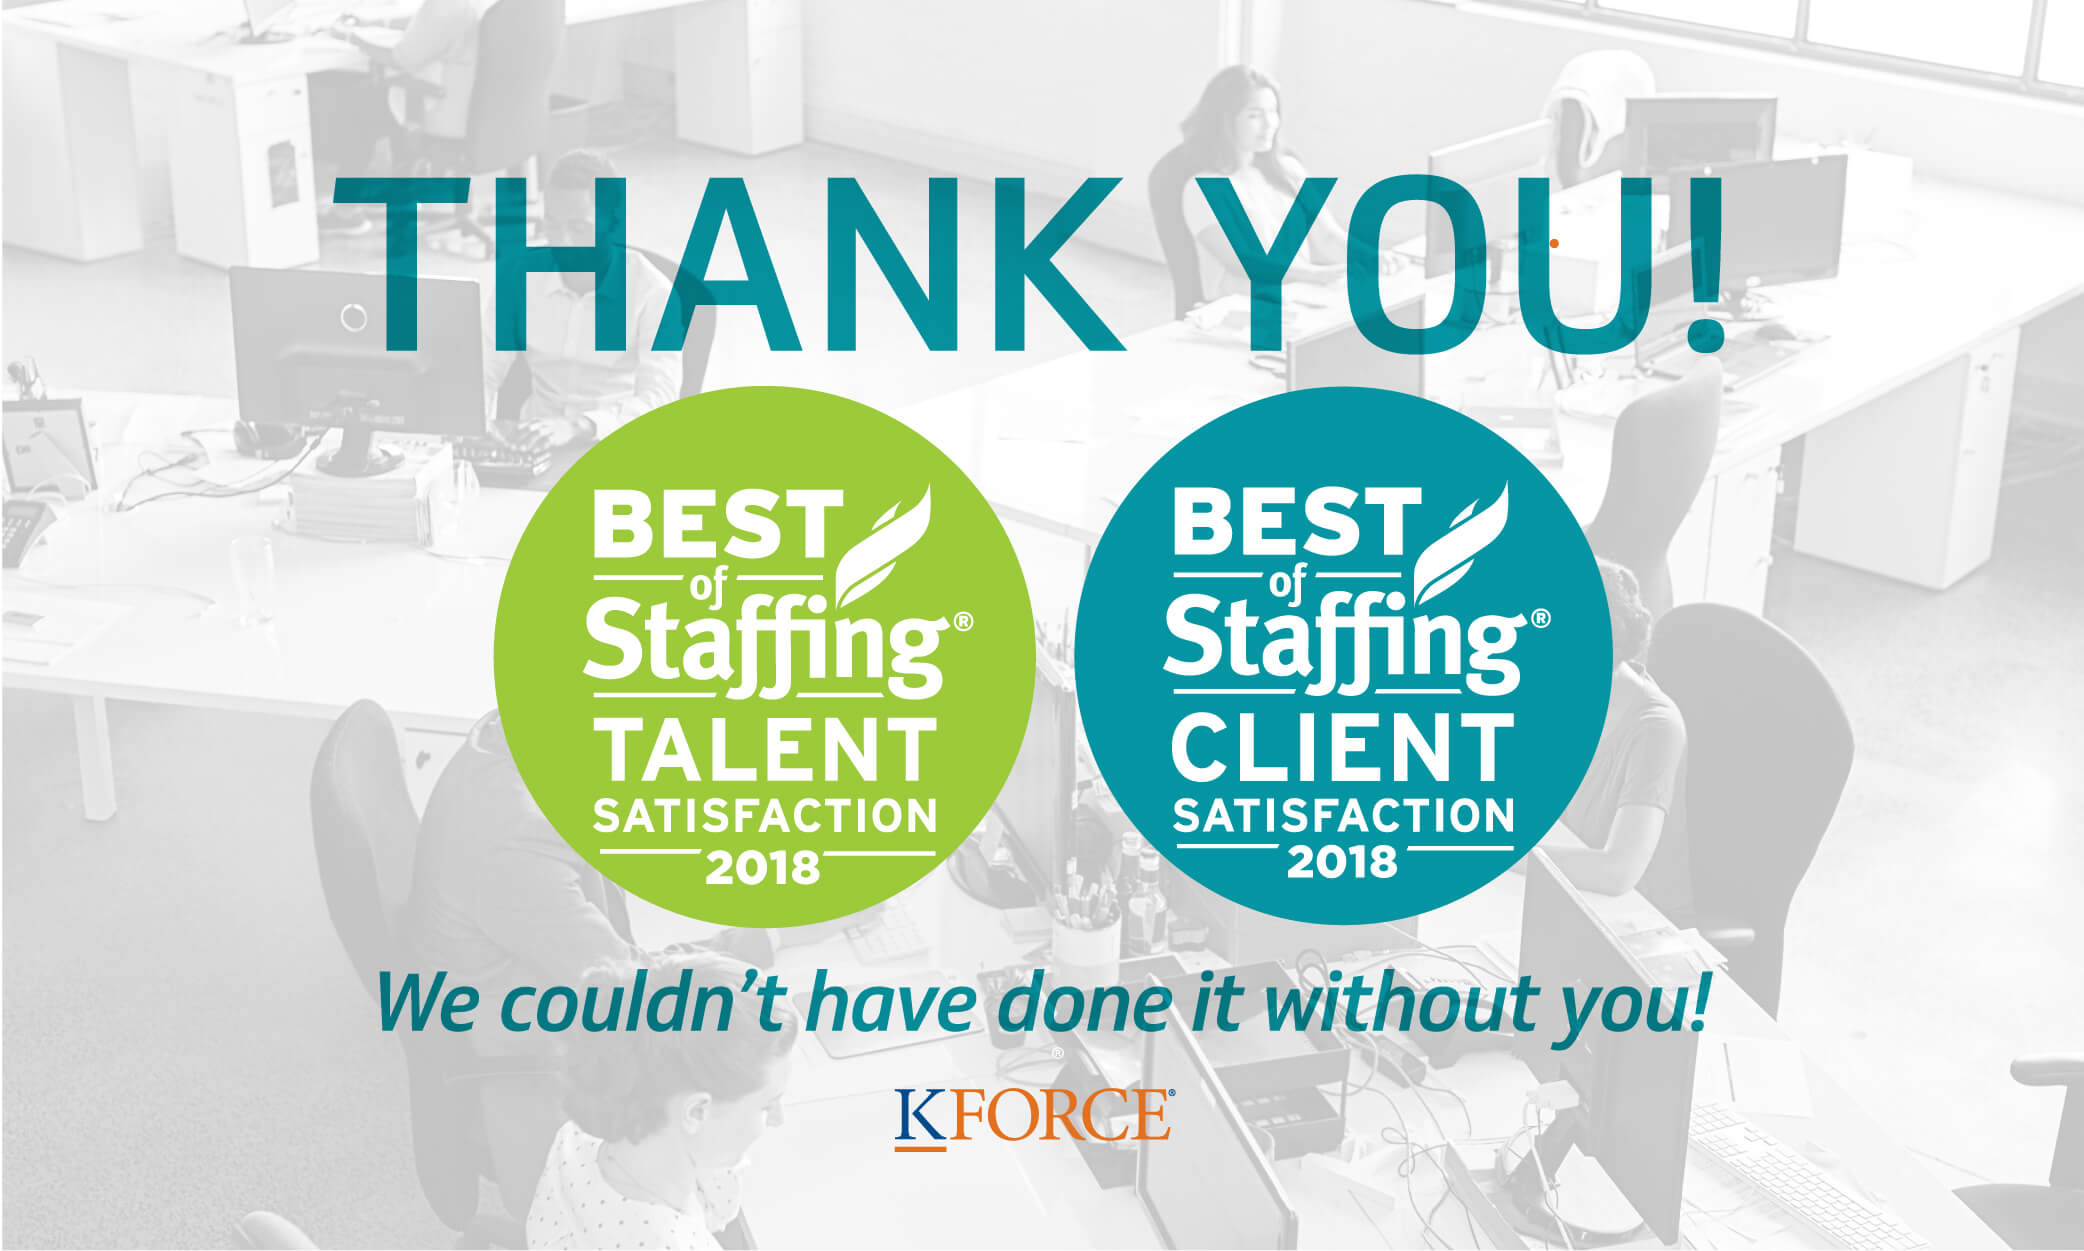 kforce wins best of staffing